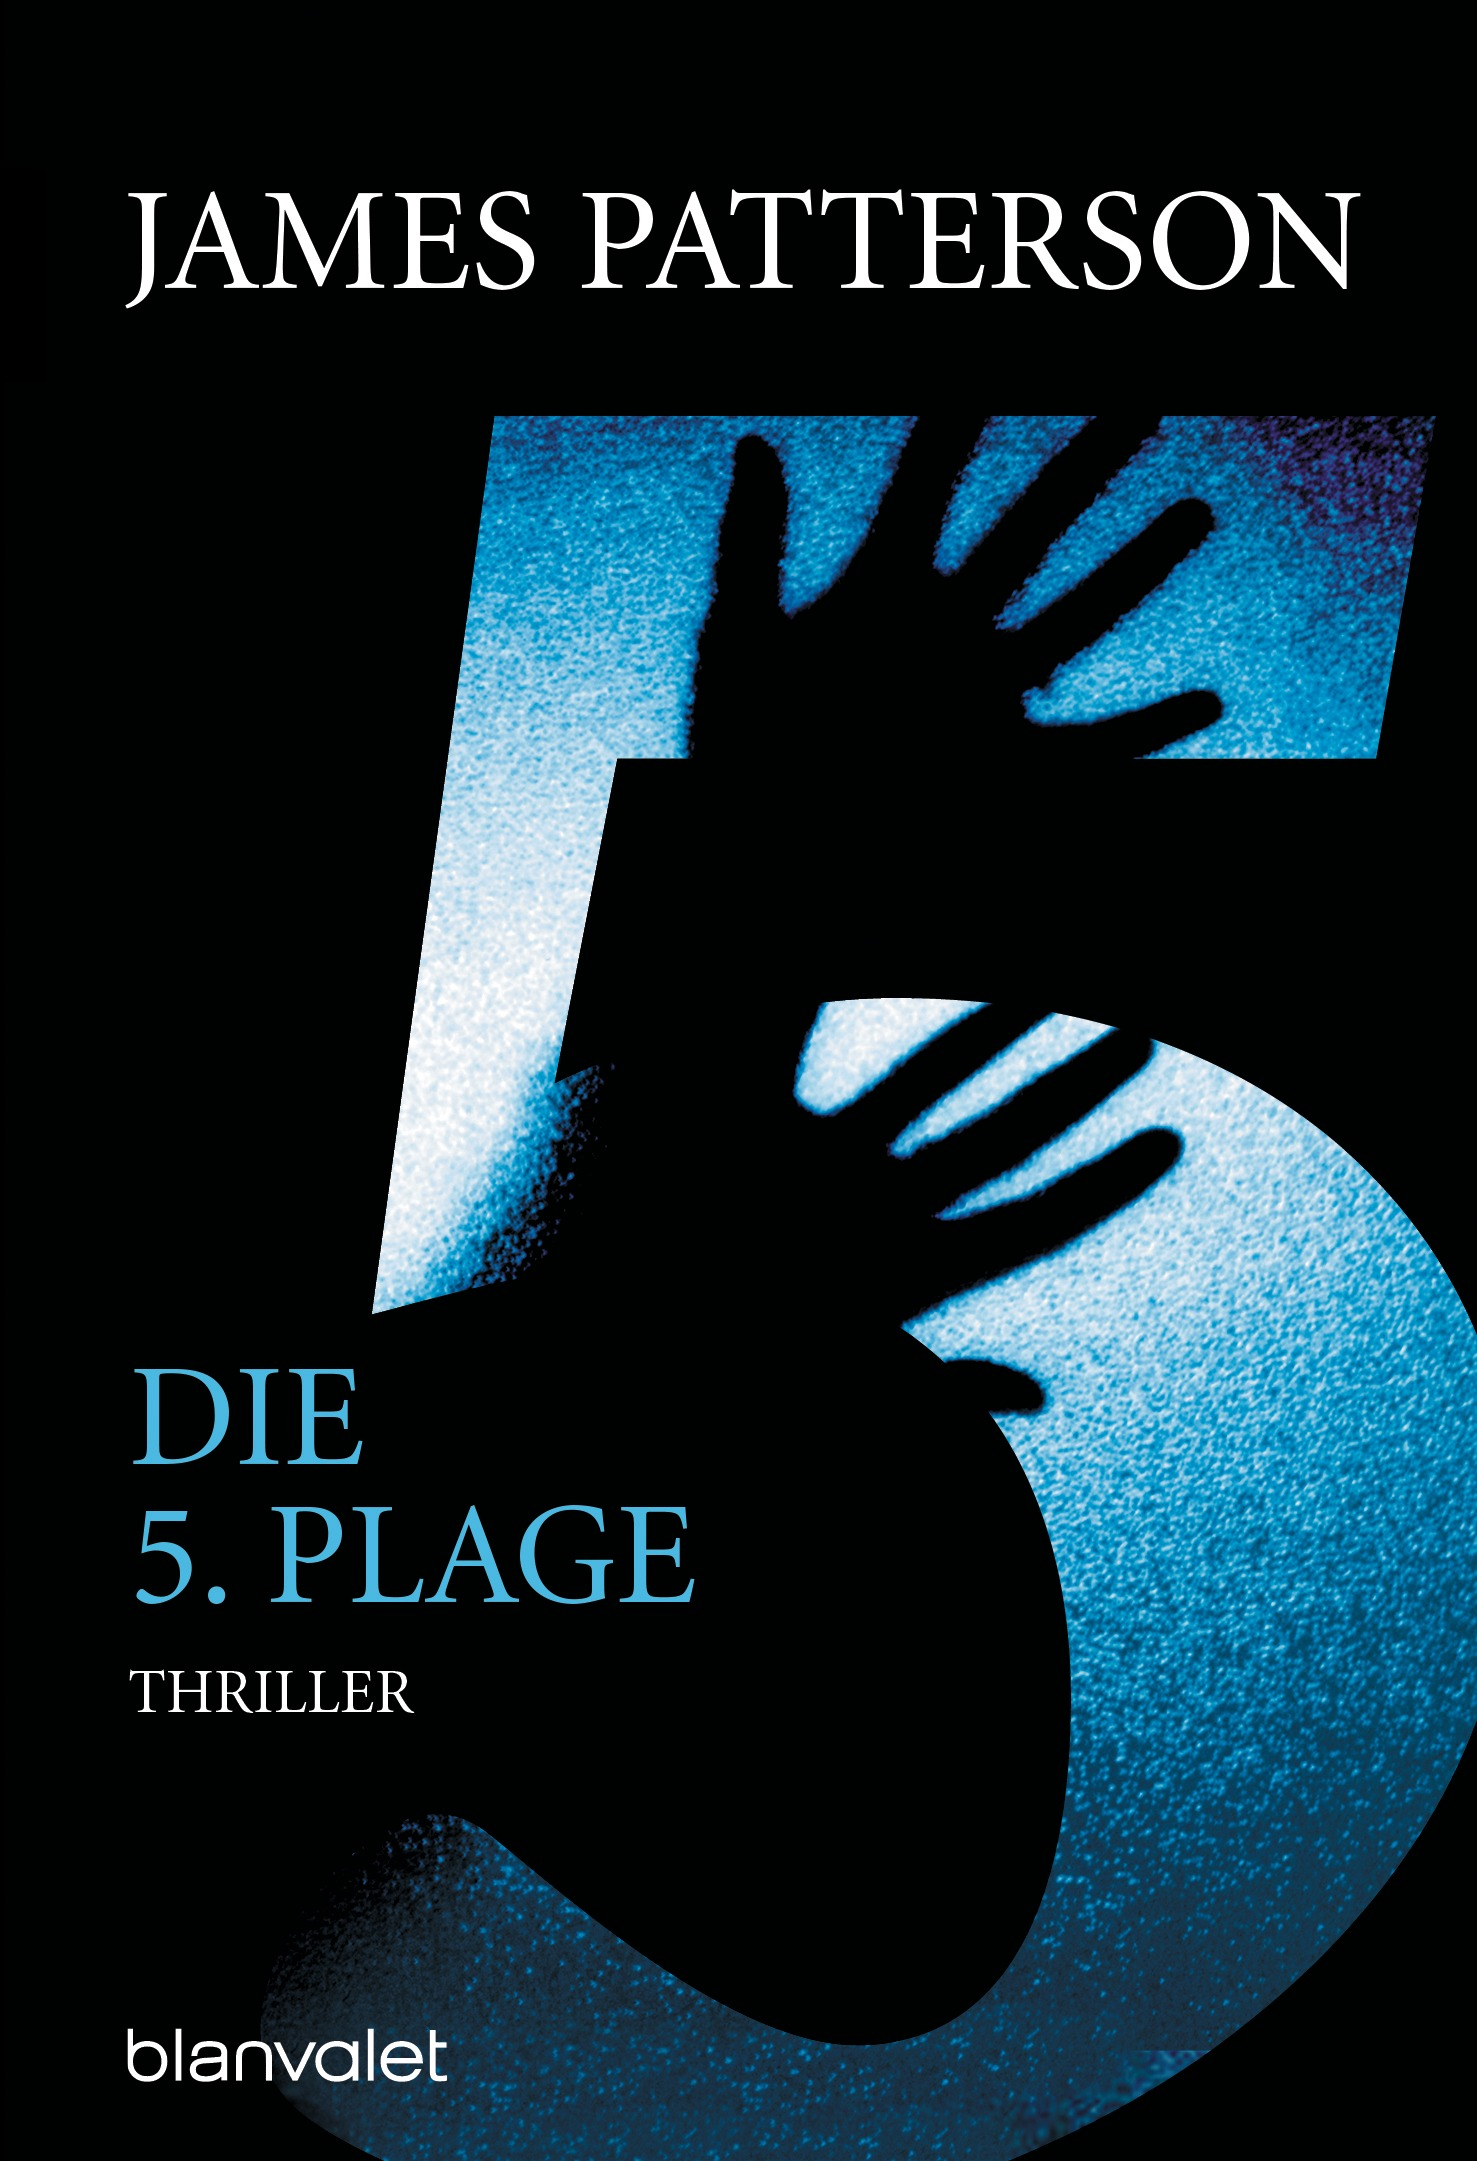 Die 5. Plage - James Patterson